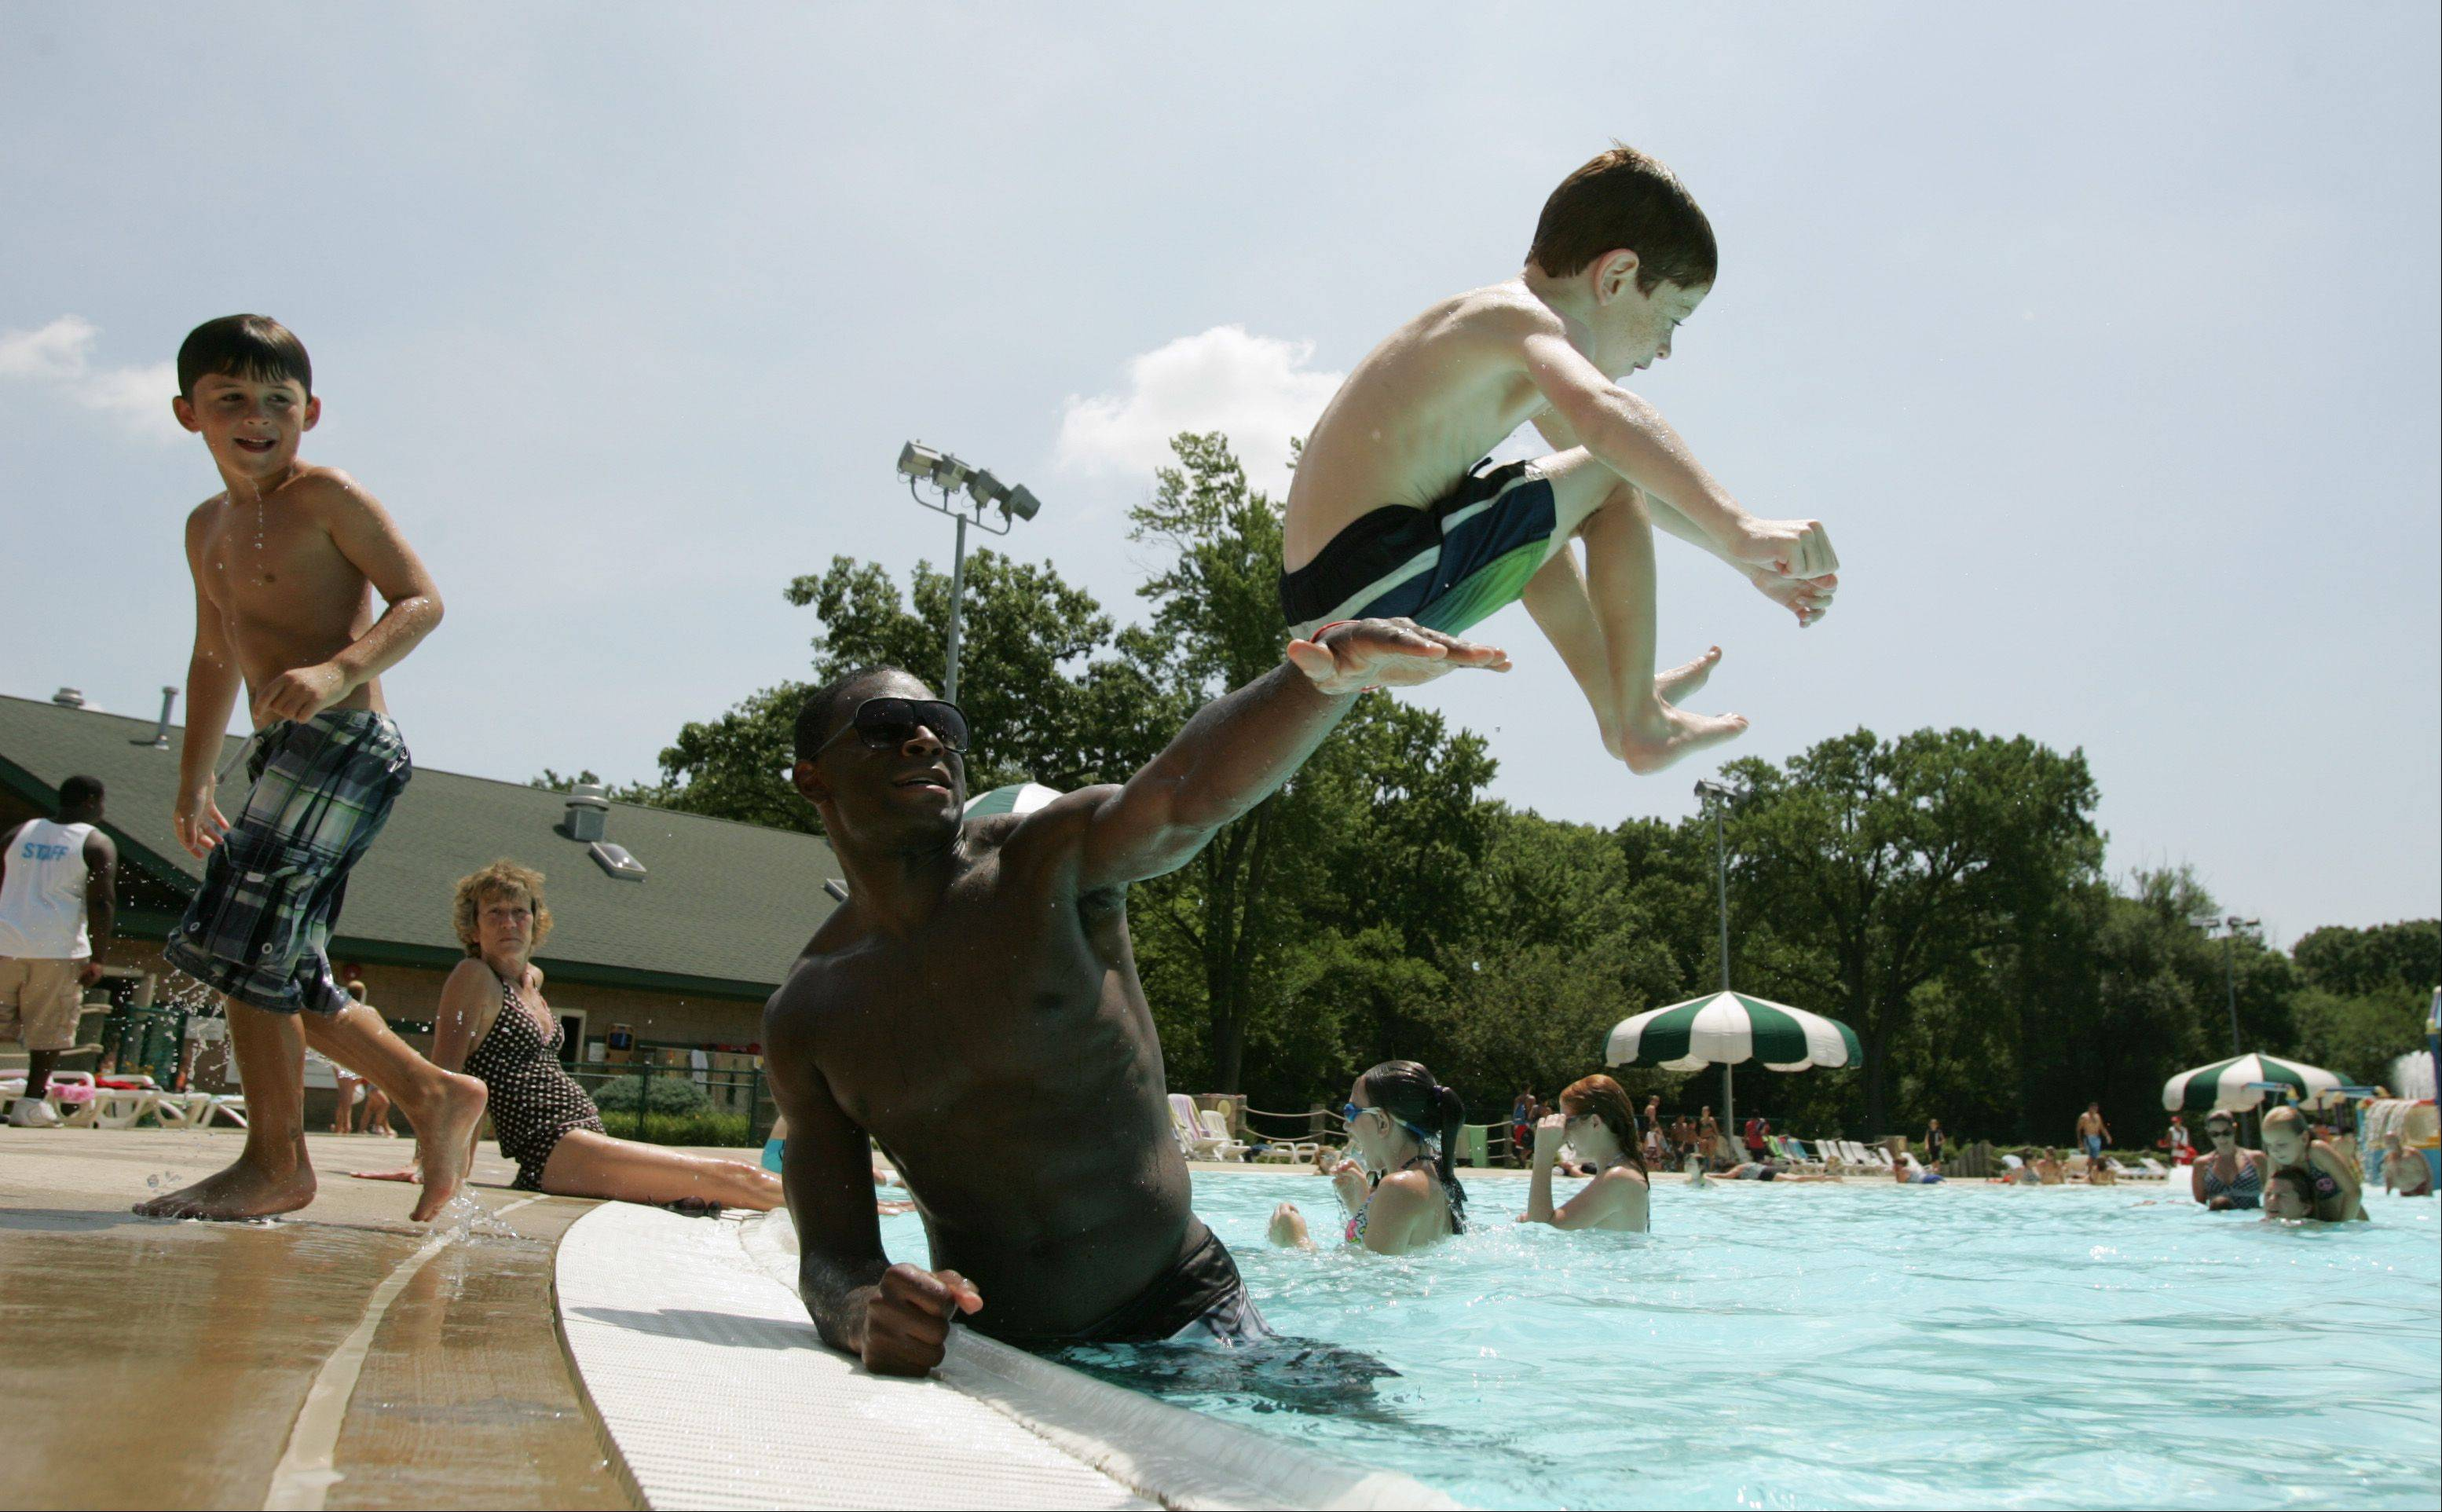 Elgin Parks and Recreation Department summer camper Jack Steskal, 7 soars over the outstretched arm of camp counselor Josh Smith Tuesday at Wing Park Family Aquatic Center in Elgin. Both Smith and Steskal are from Elgin.